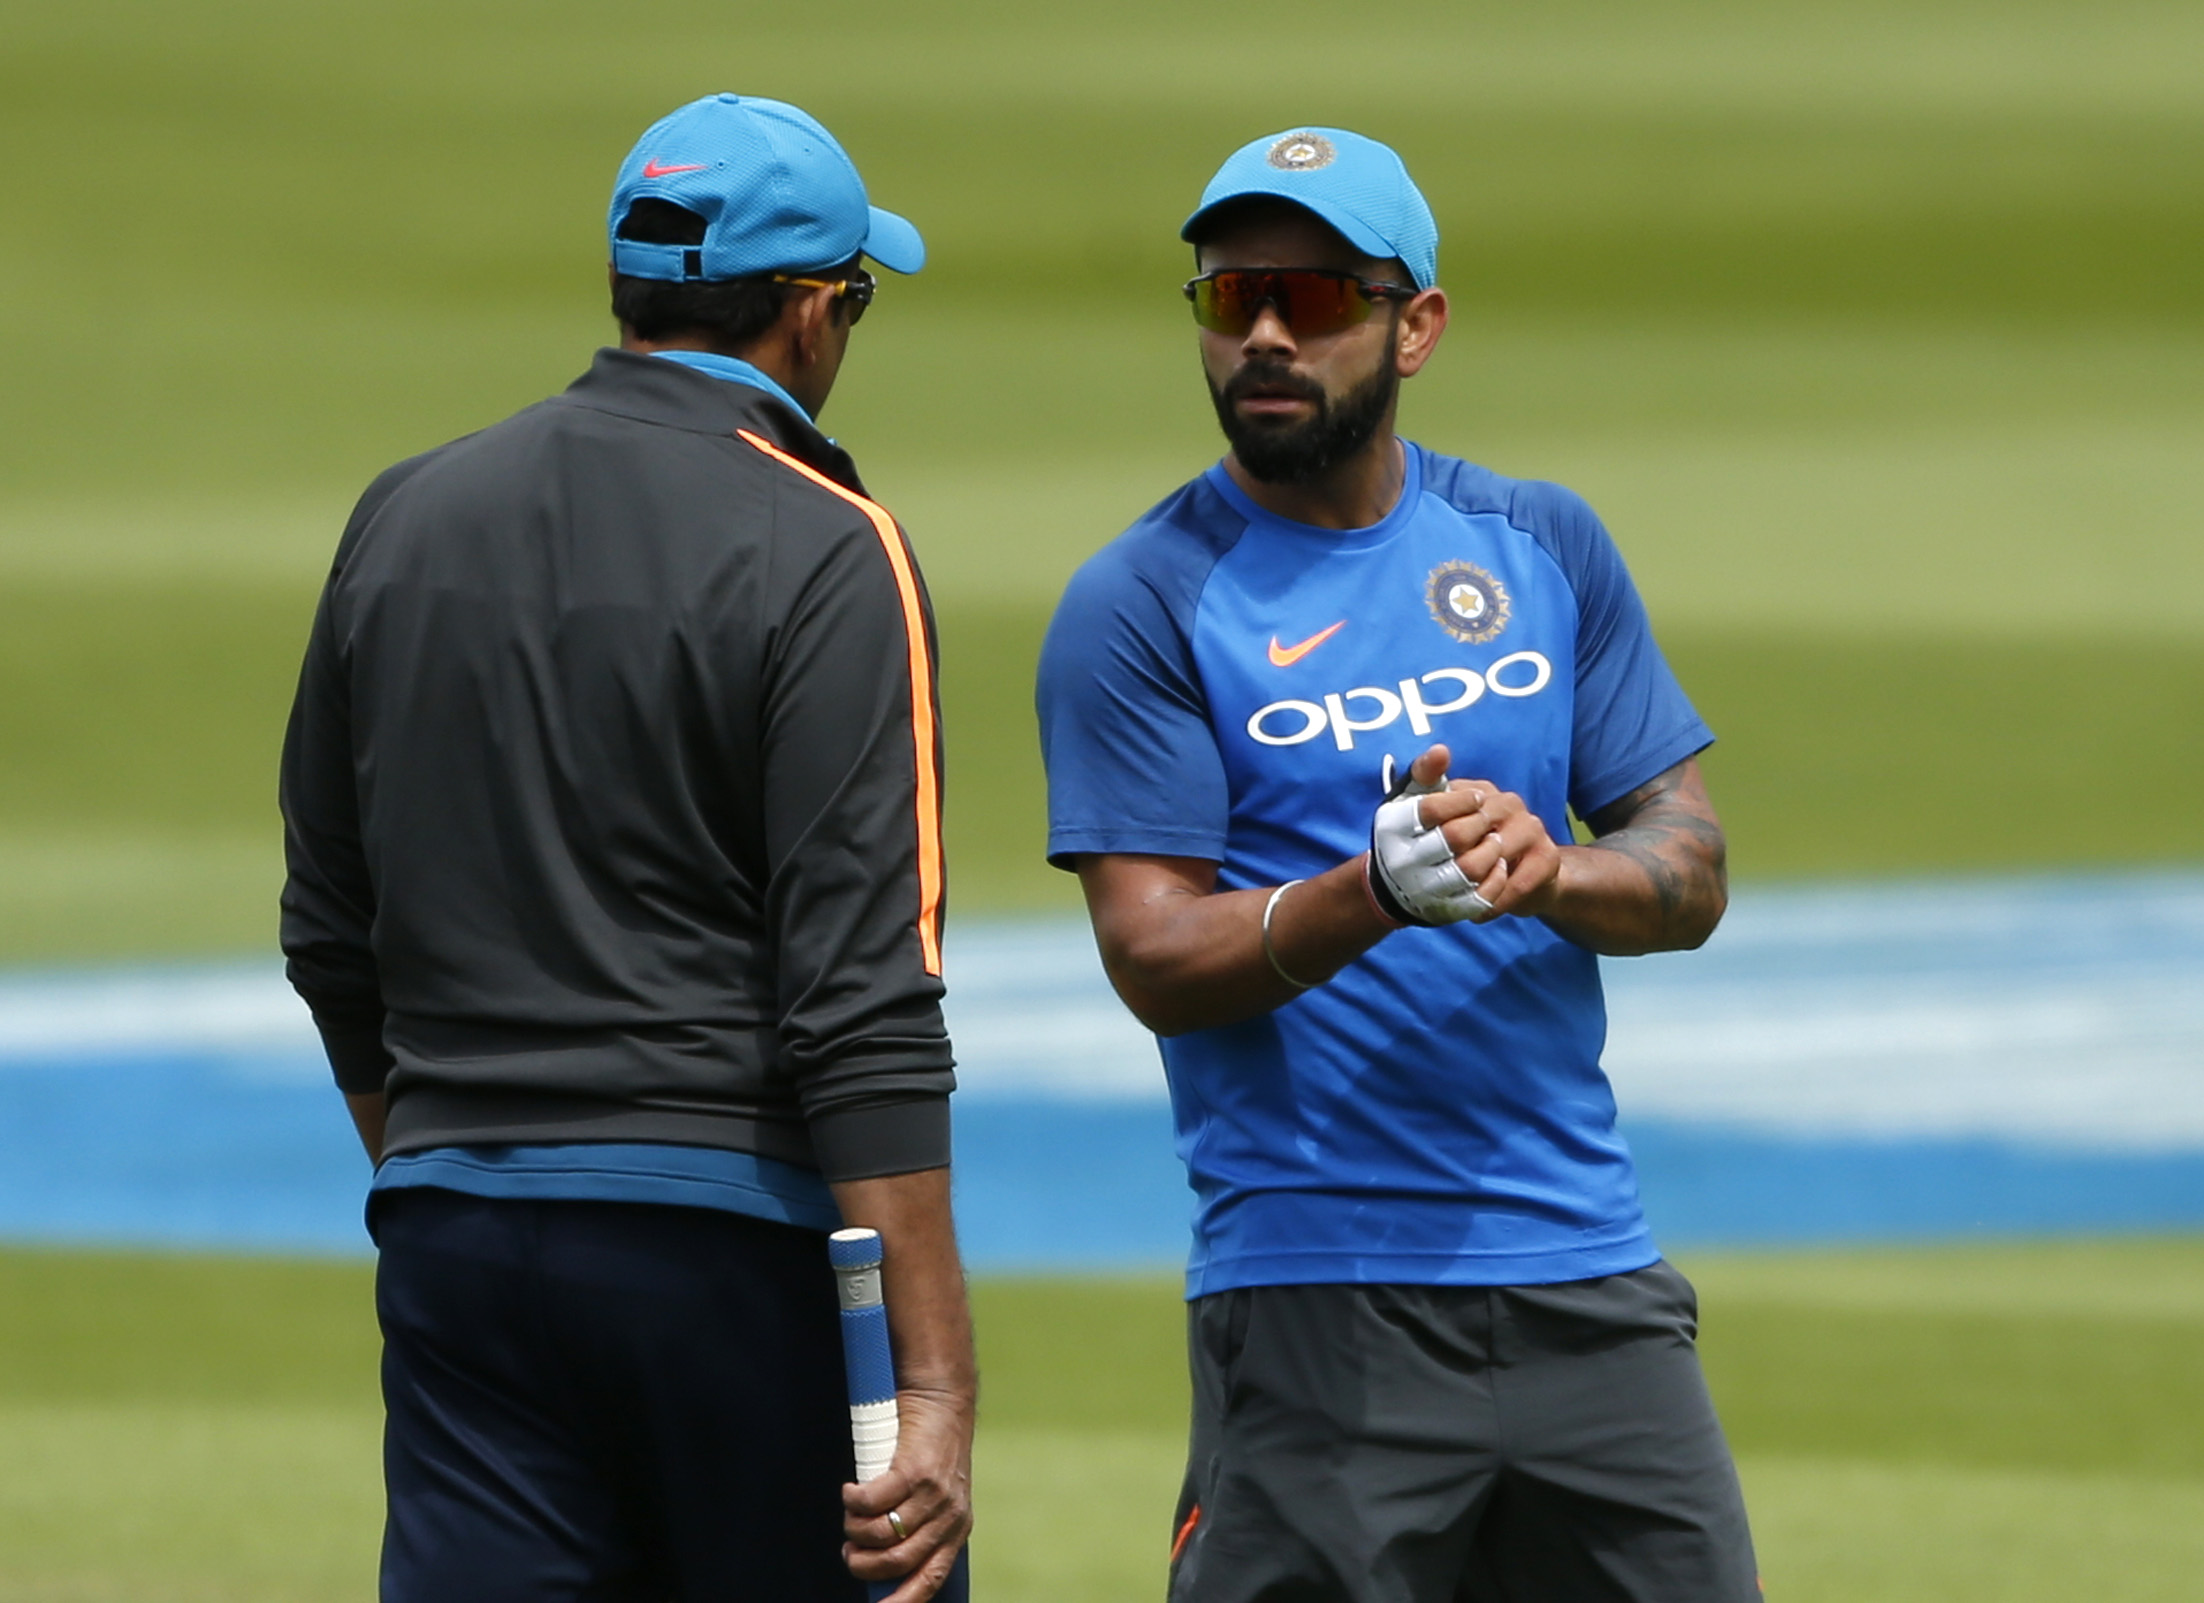 Cricket: No problems with Kumble and don't spread rumours, says Kohli